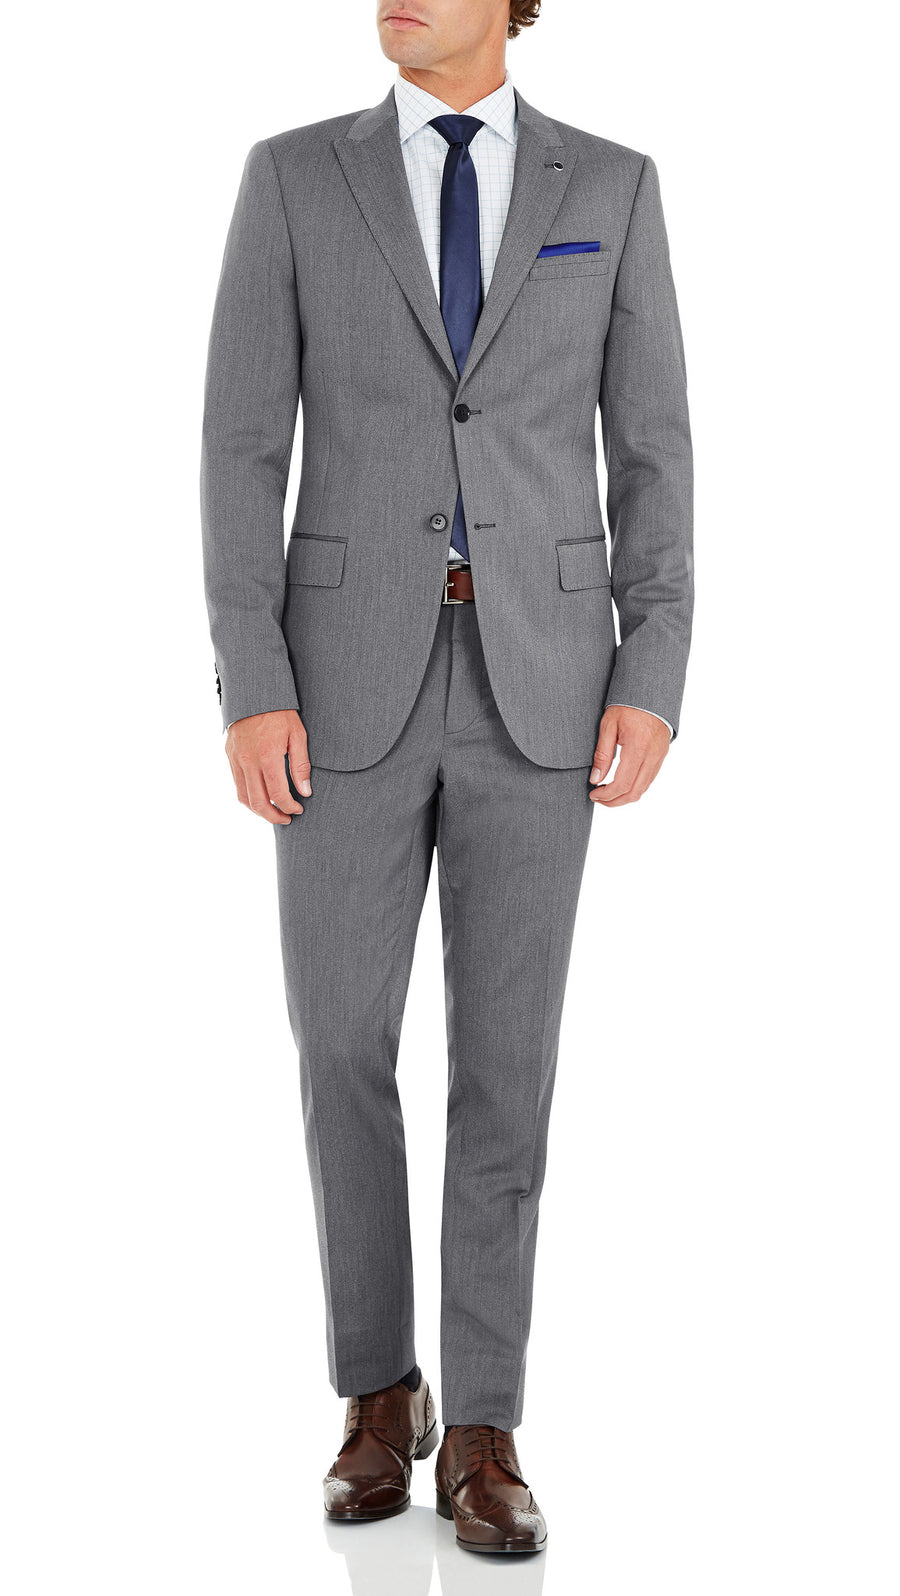 "Blackjacket ""Caprice"" Slim Fit Suit in Grey - Ron Bennett Menswear  - 3"